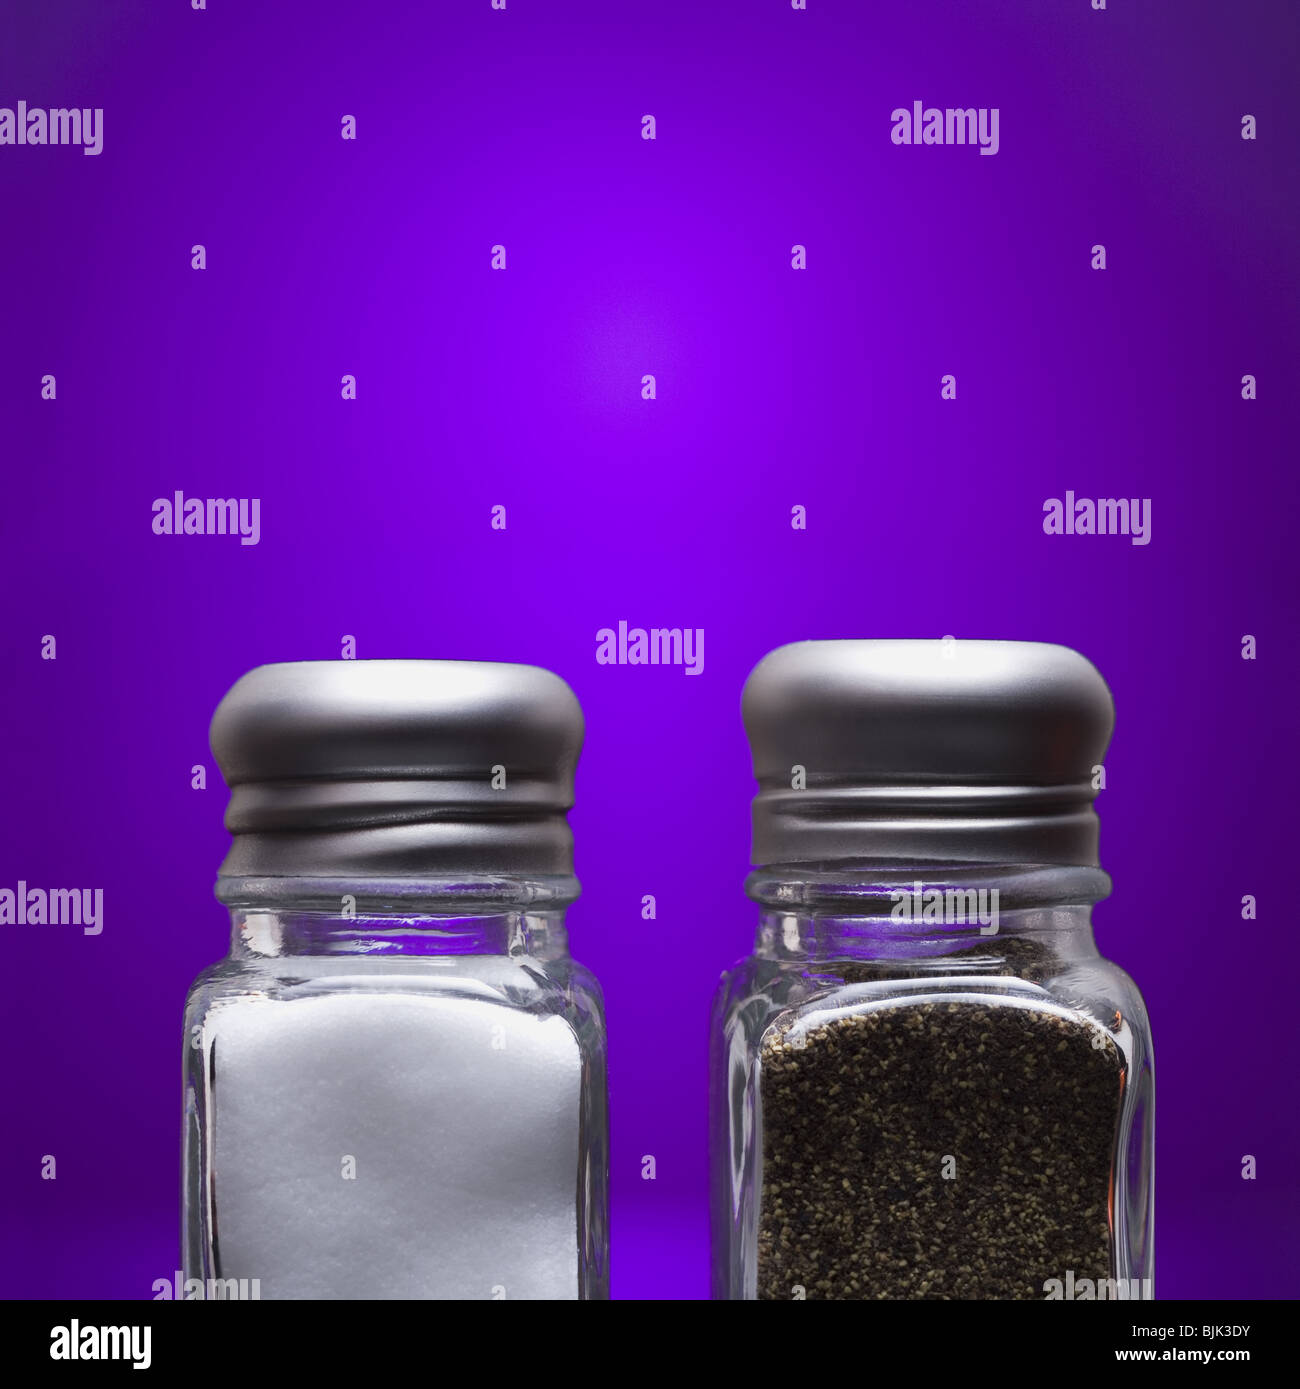 Salt and pepper shakers close-up - Stock Image